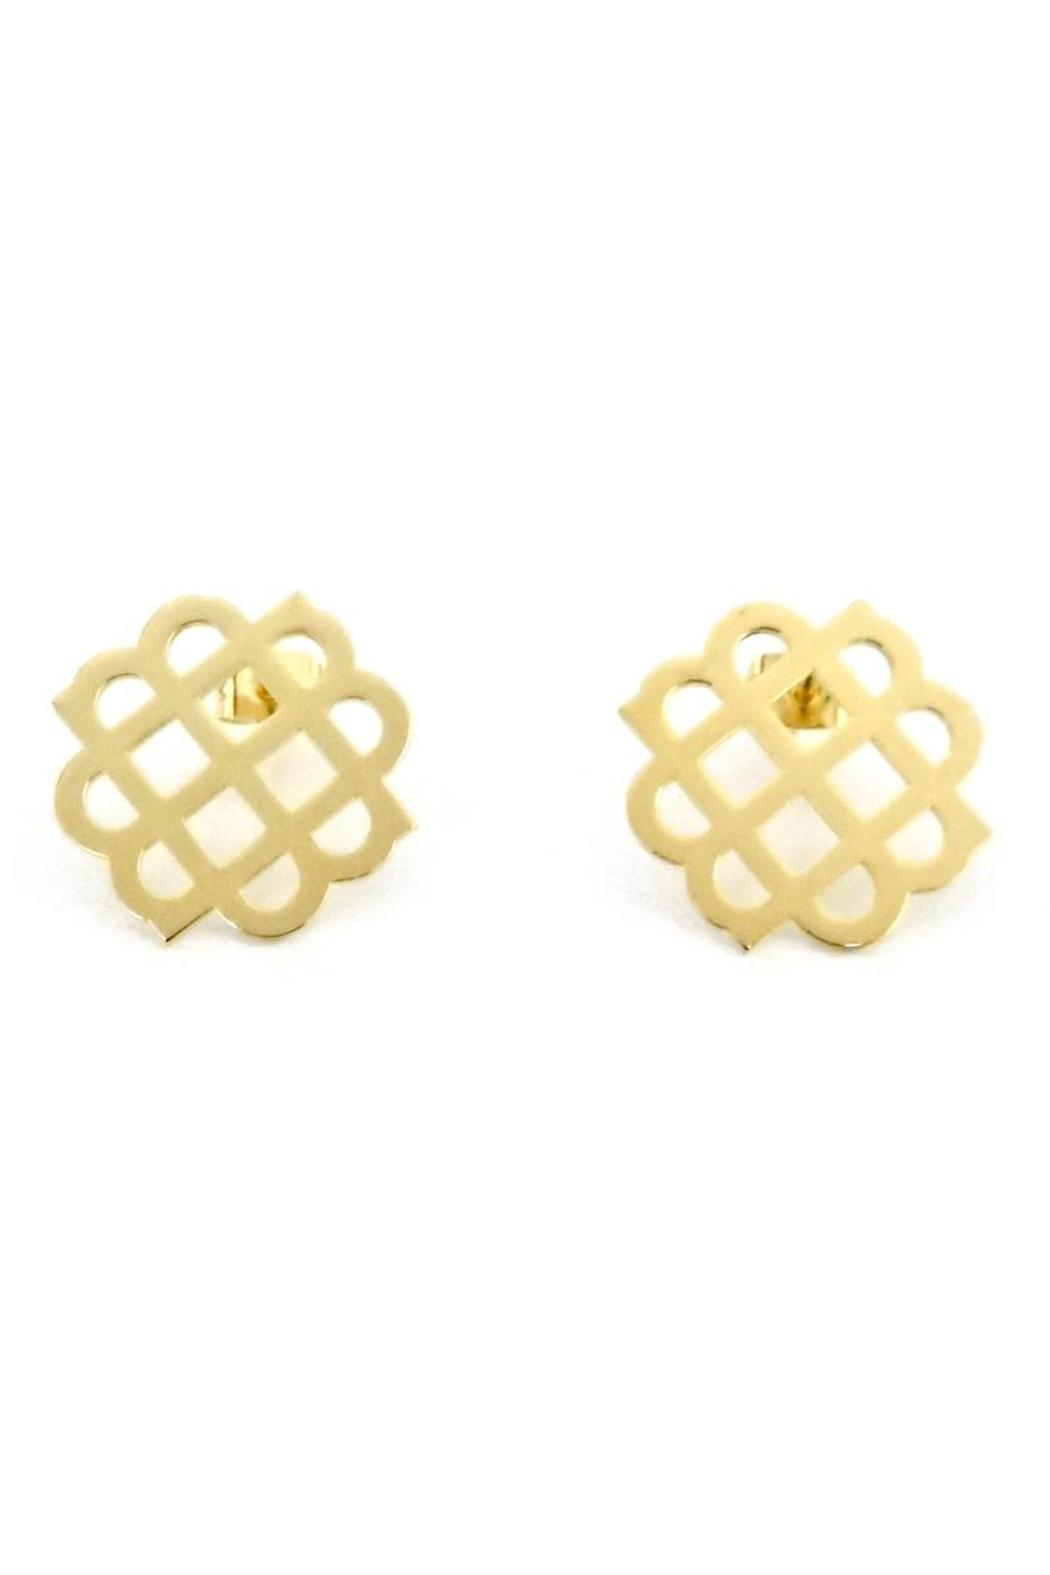 Millie Jewelry Millie Gold Earrings - Main Image